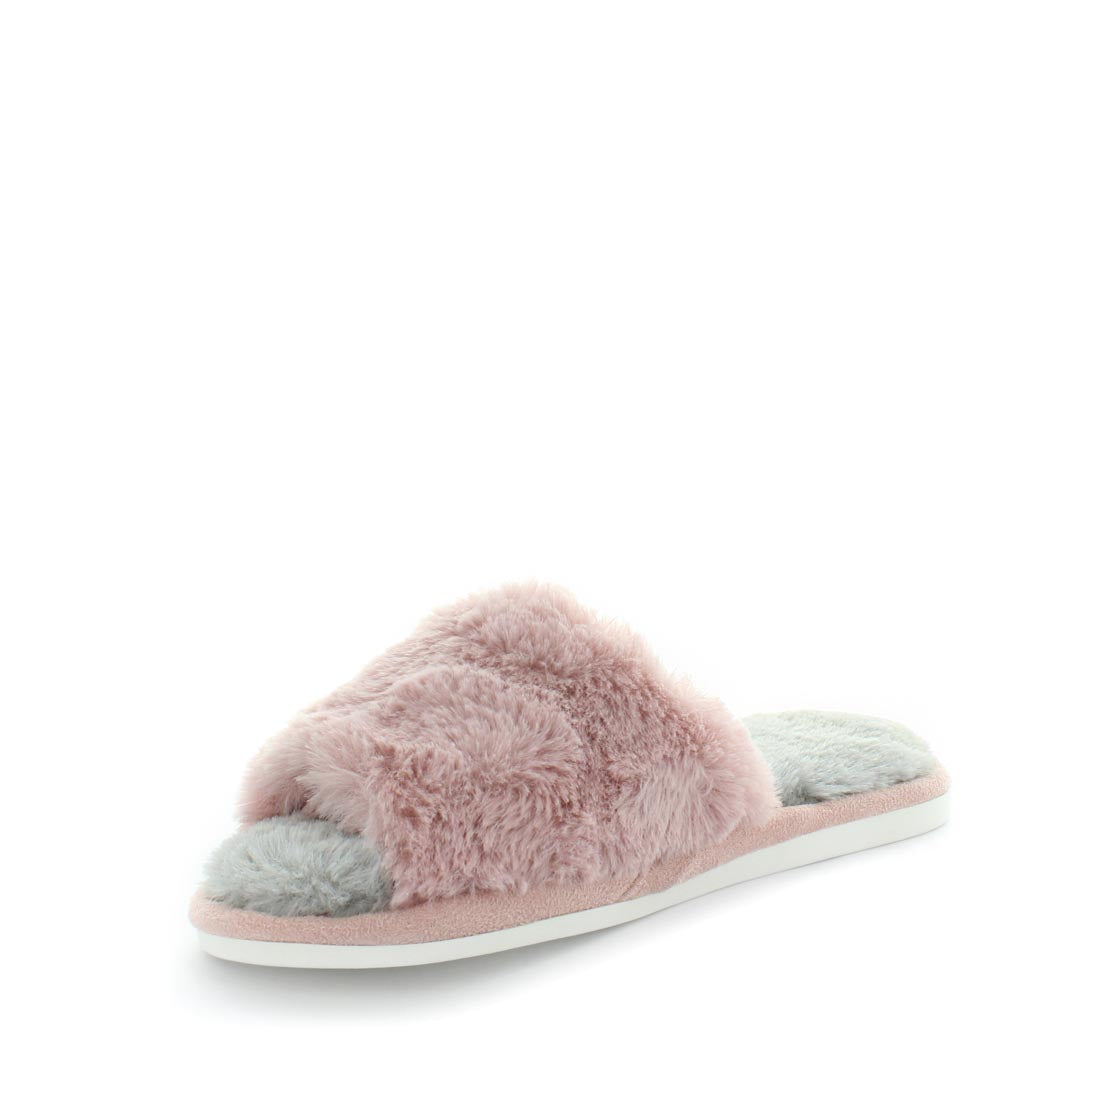 ELBE by PANDA - iShoes - What's New, What's New: Women's New Arrivals, Women's Shoes: Slippers - FOOTWEAR-FOOTWEAR